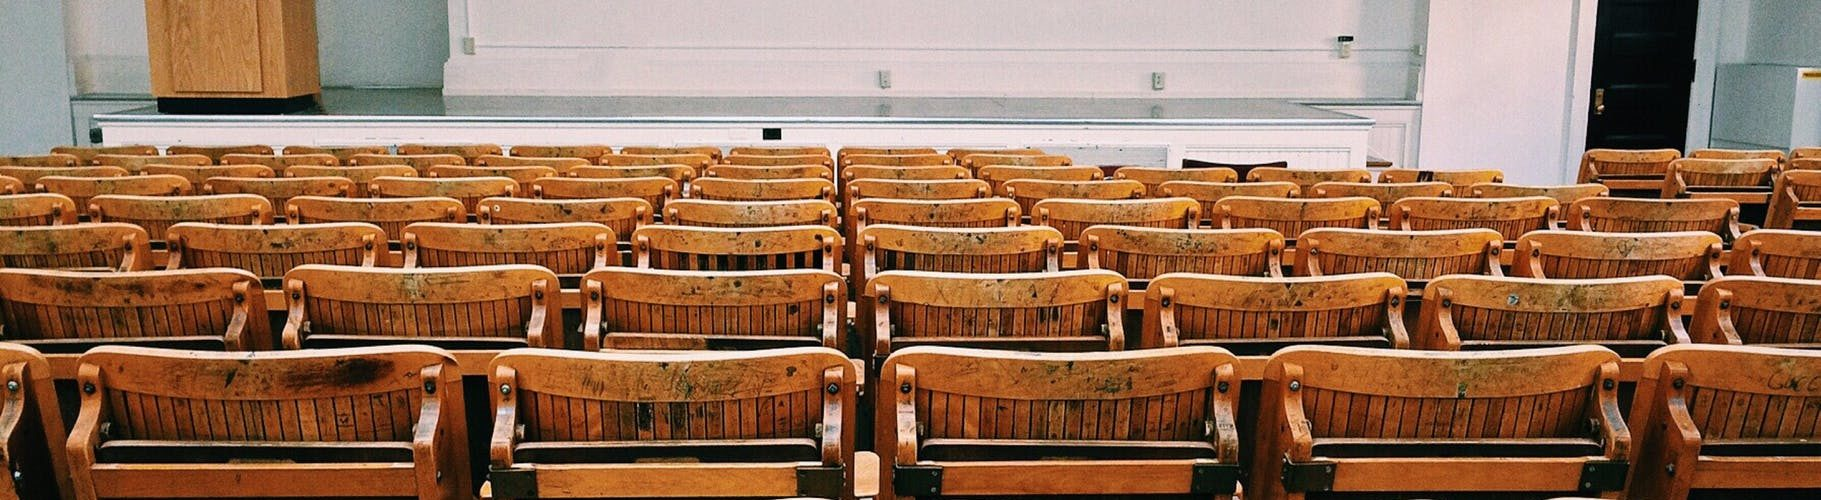 "Photo by Pixabay on ""https://www.pexels.com/photo/auditorium-benches-chairs-class-207691/"" Pexels.com"